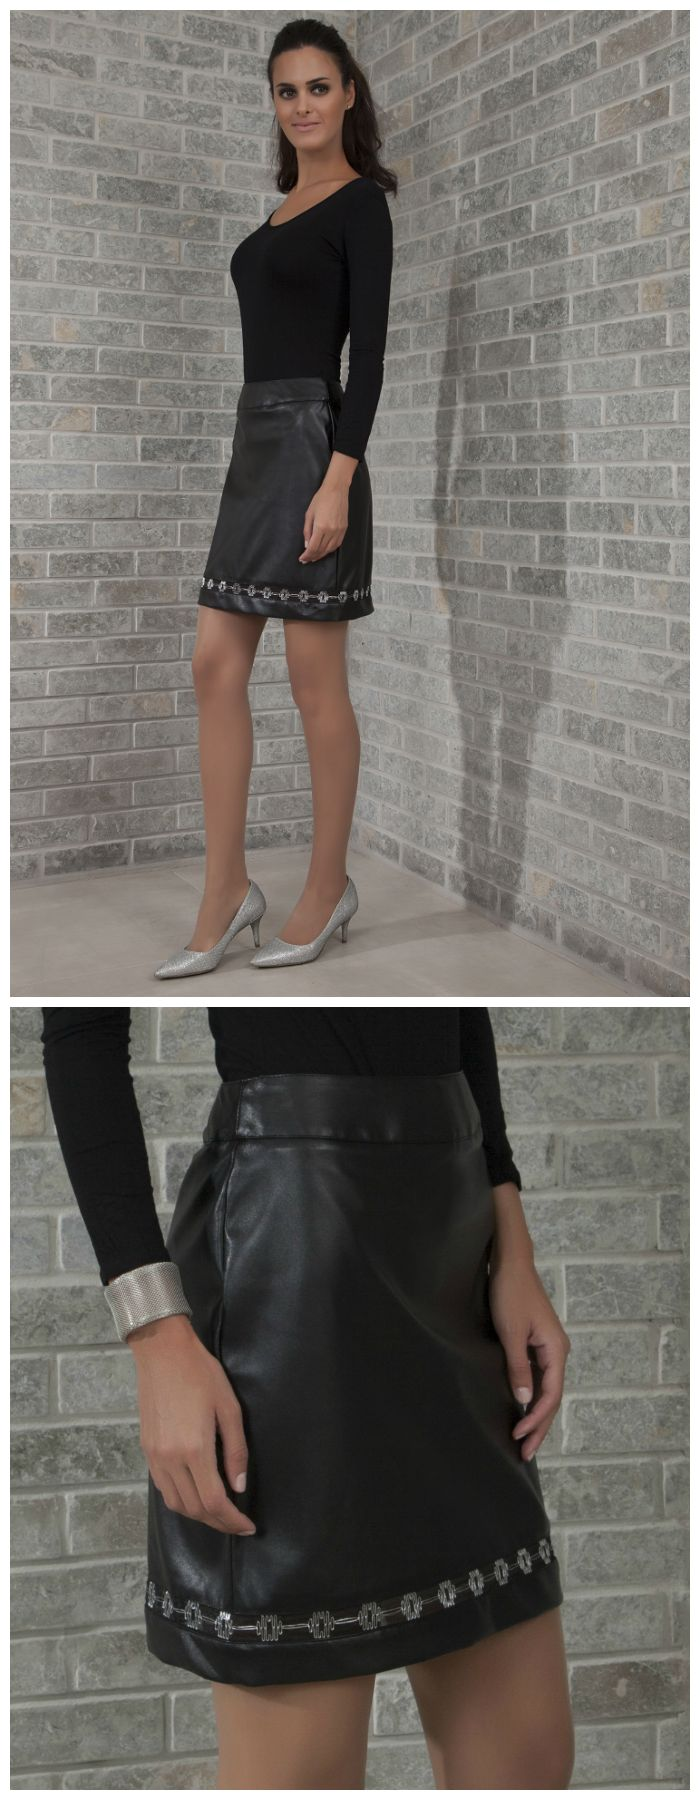 LAYLA Skirt : Black mini skirt, in a faux leather fabric  with a black/sliver mesh sheer embroidered panel.